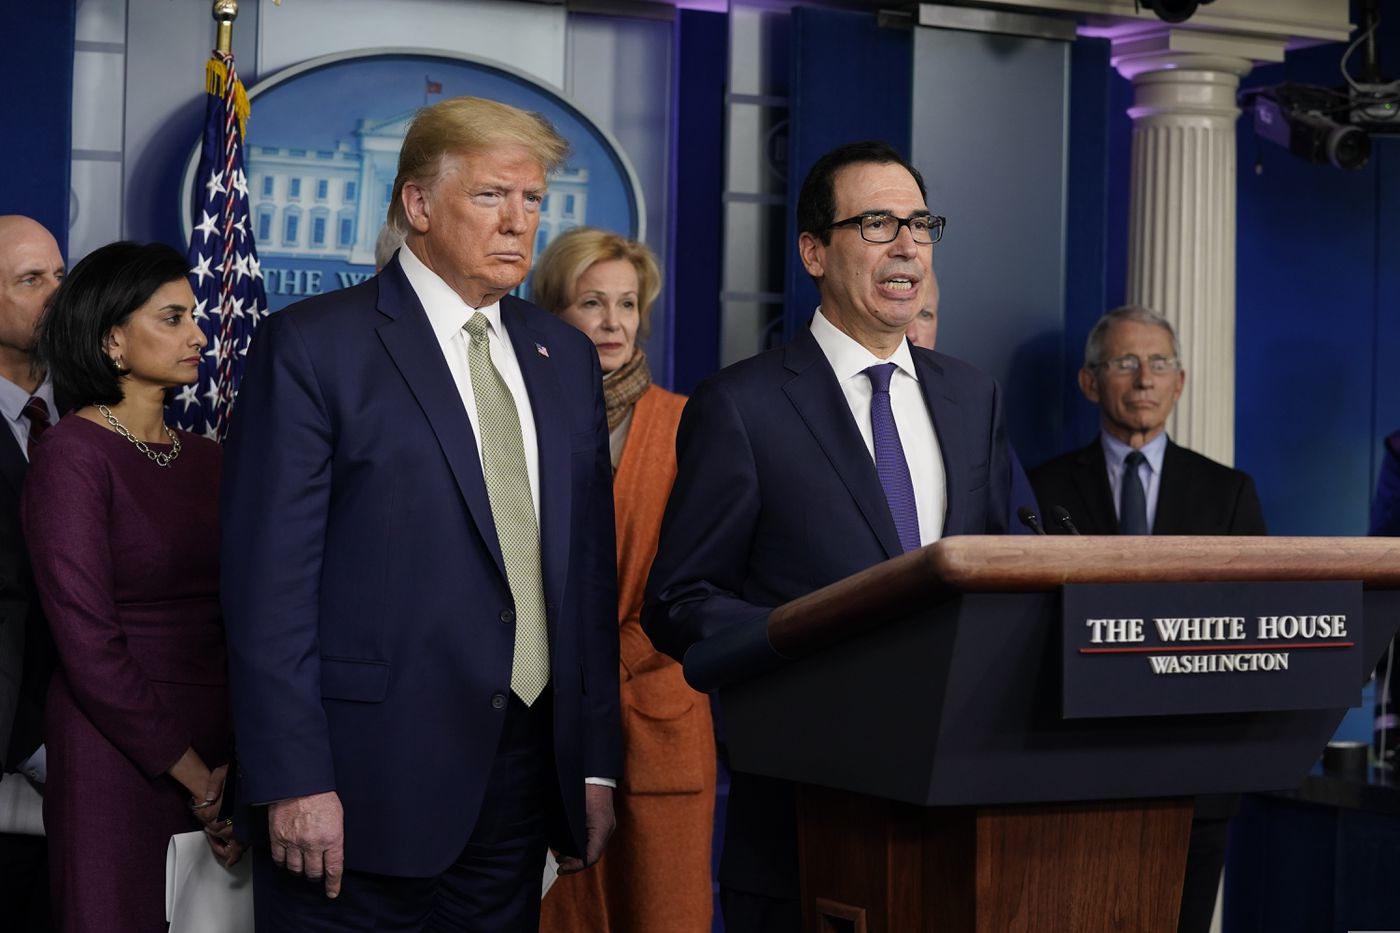 Treasury Secretary Steven Mnuchin speaks during a press briefing with the coronavirus task force, at the White House as President Donald Trump looks on.